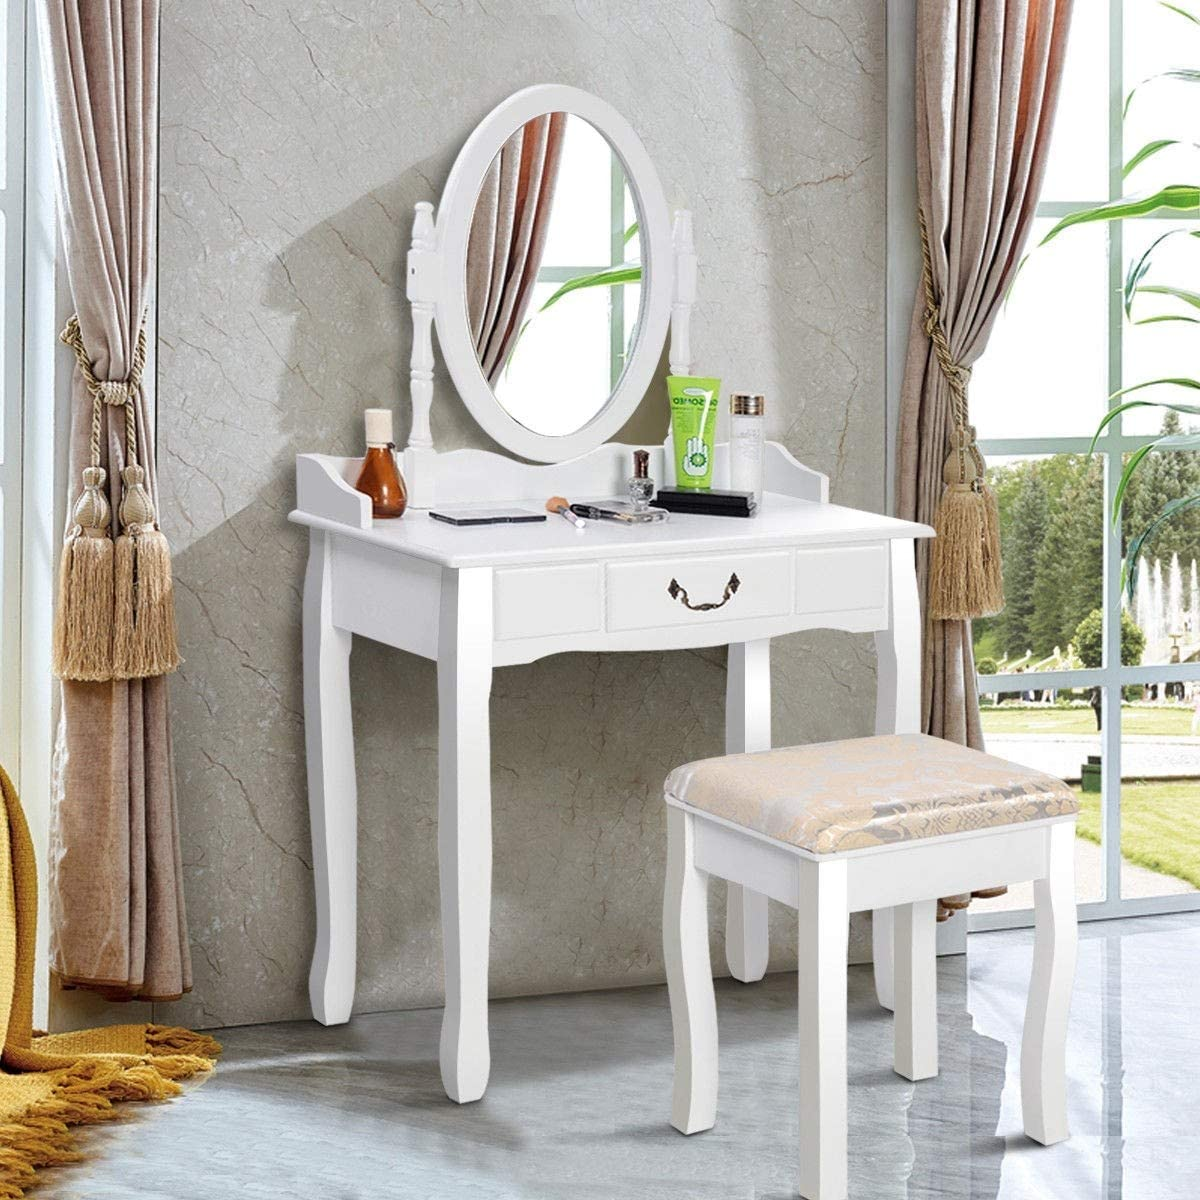 WaterJoy Vanity Set, White Vanity Dressing Oval Mirror Makeup Table with 360 Degrees Rotating Mirror, Makeup Cushioned Stool Wood Dressing Desk with 1 Drawer for Bedroom Furniture